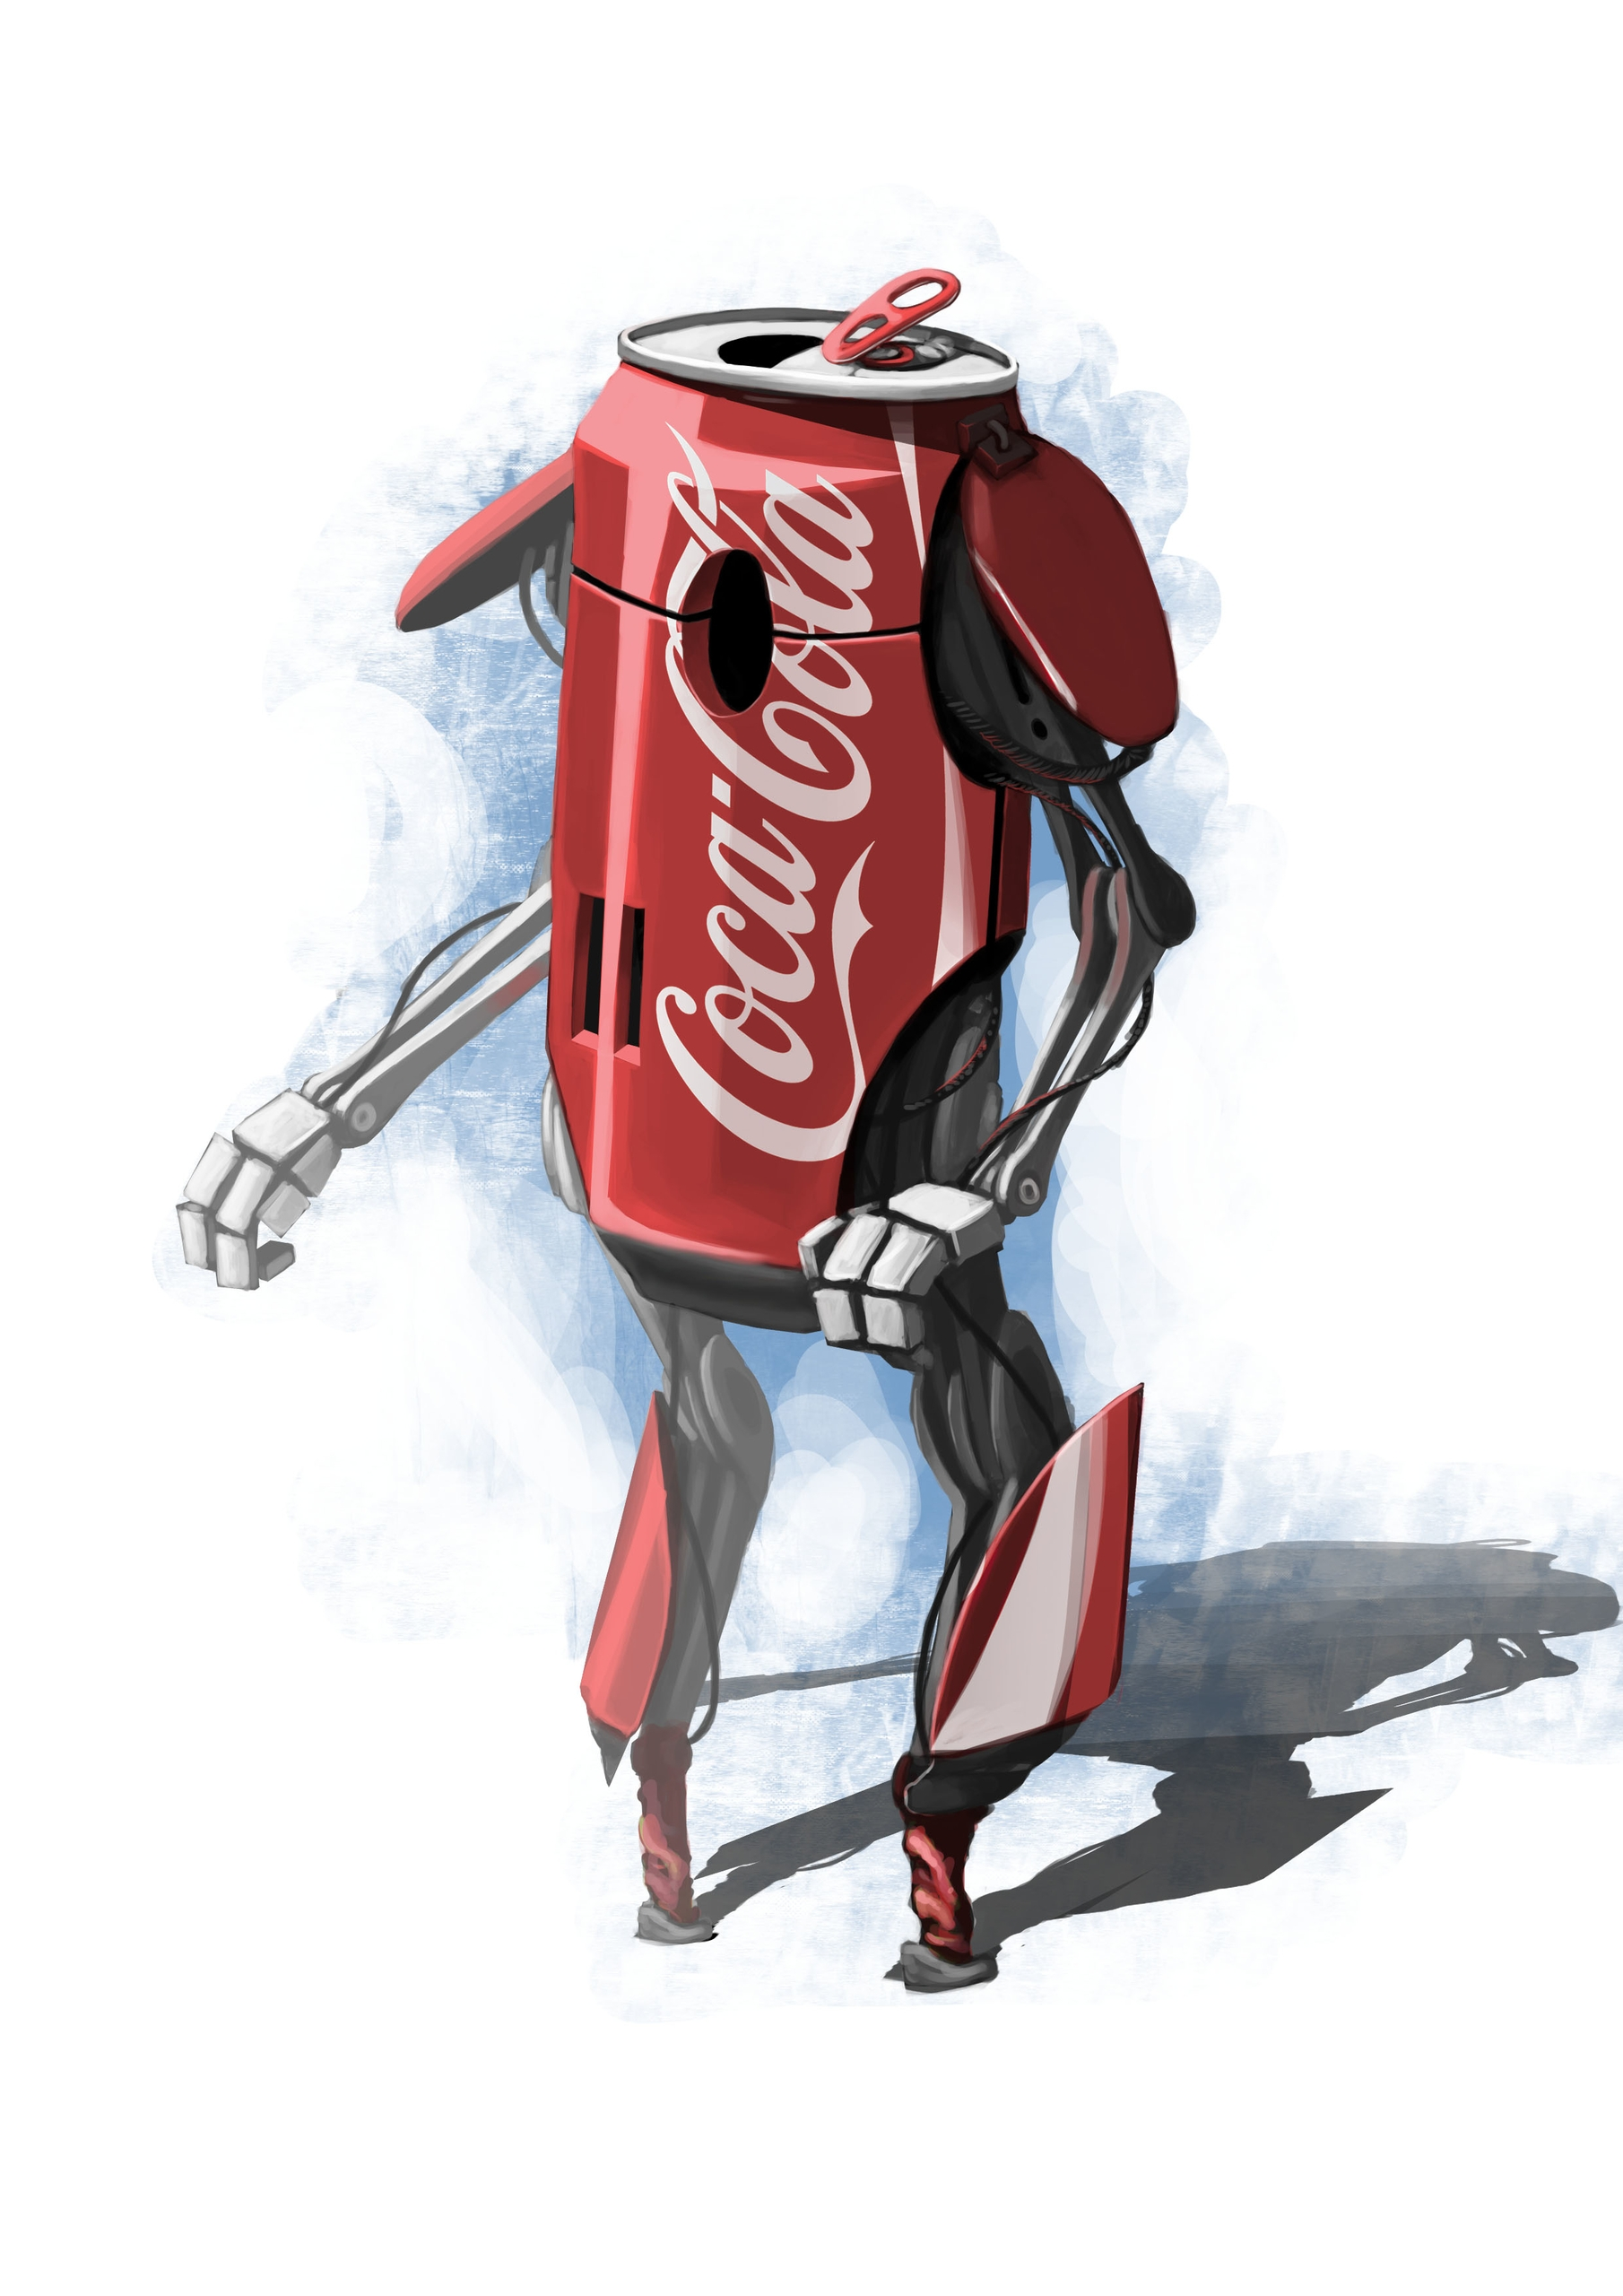 Coca Cola Robot - illustration#digitalart#design#characterdesign#photoshop#painting#davisvrworks#drawing#conceptart - prodgrafic | ello